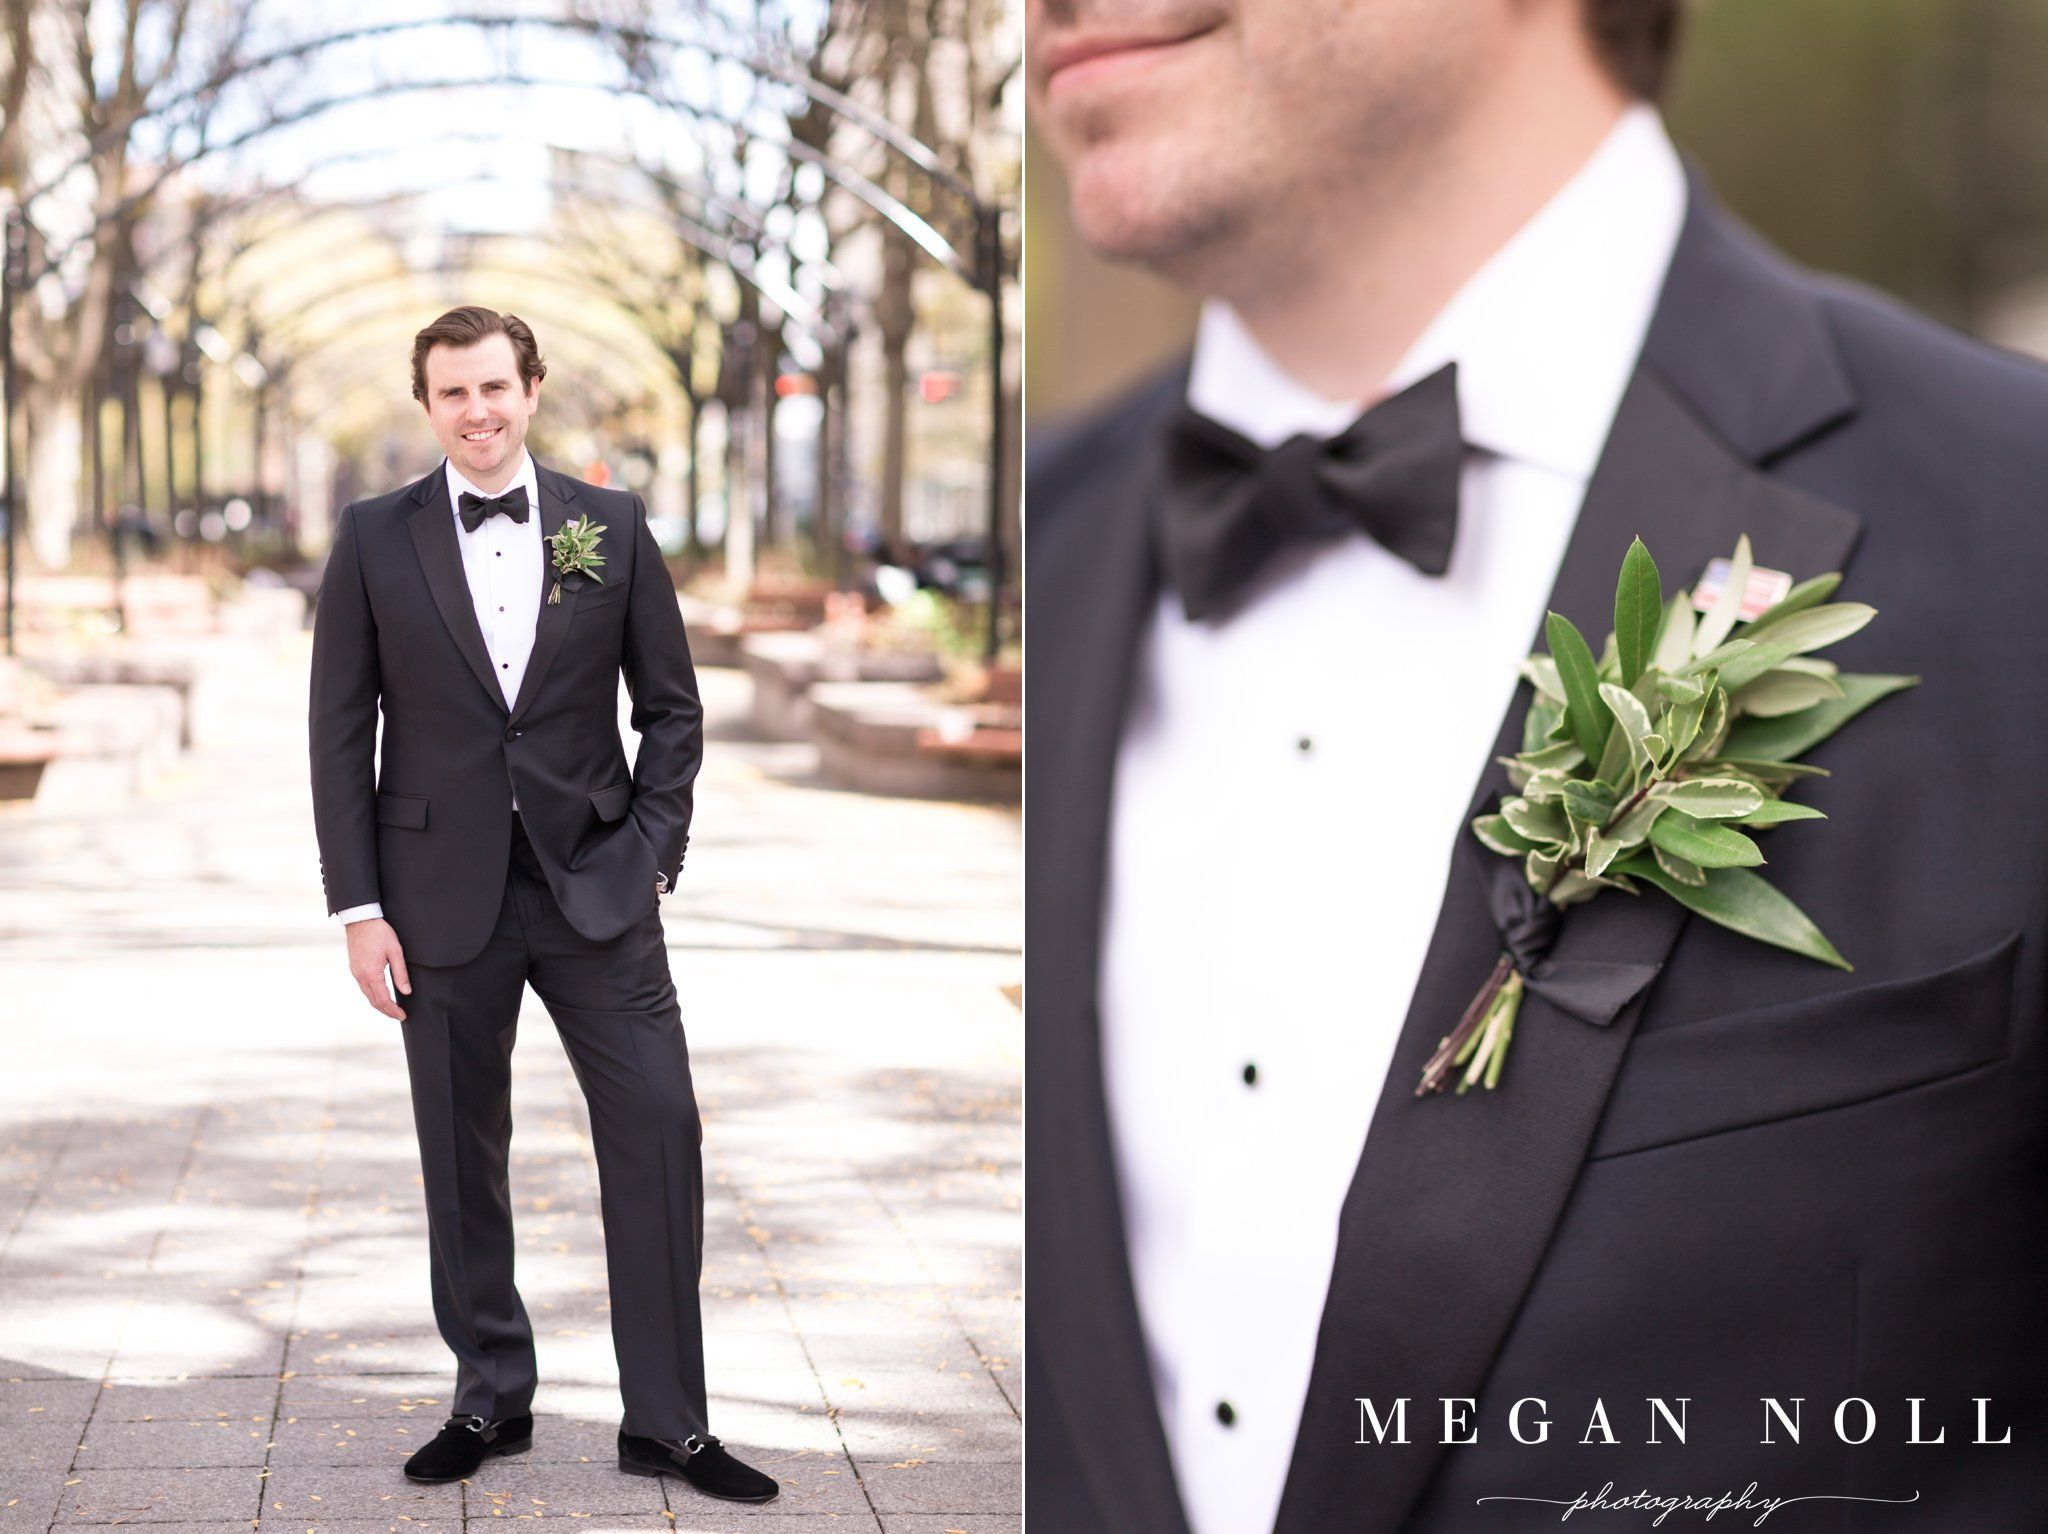 Brooks brothers groom tux for a cincinnatiwedding real wedding